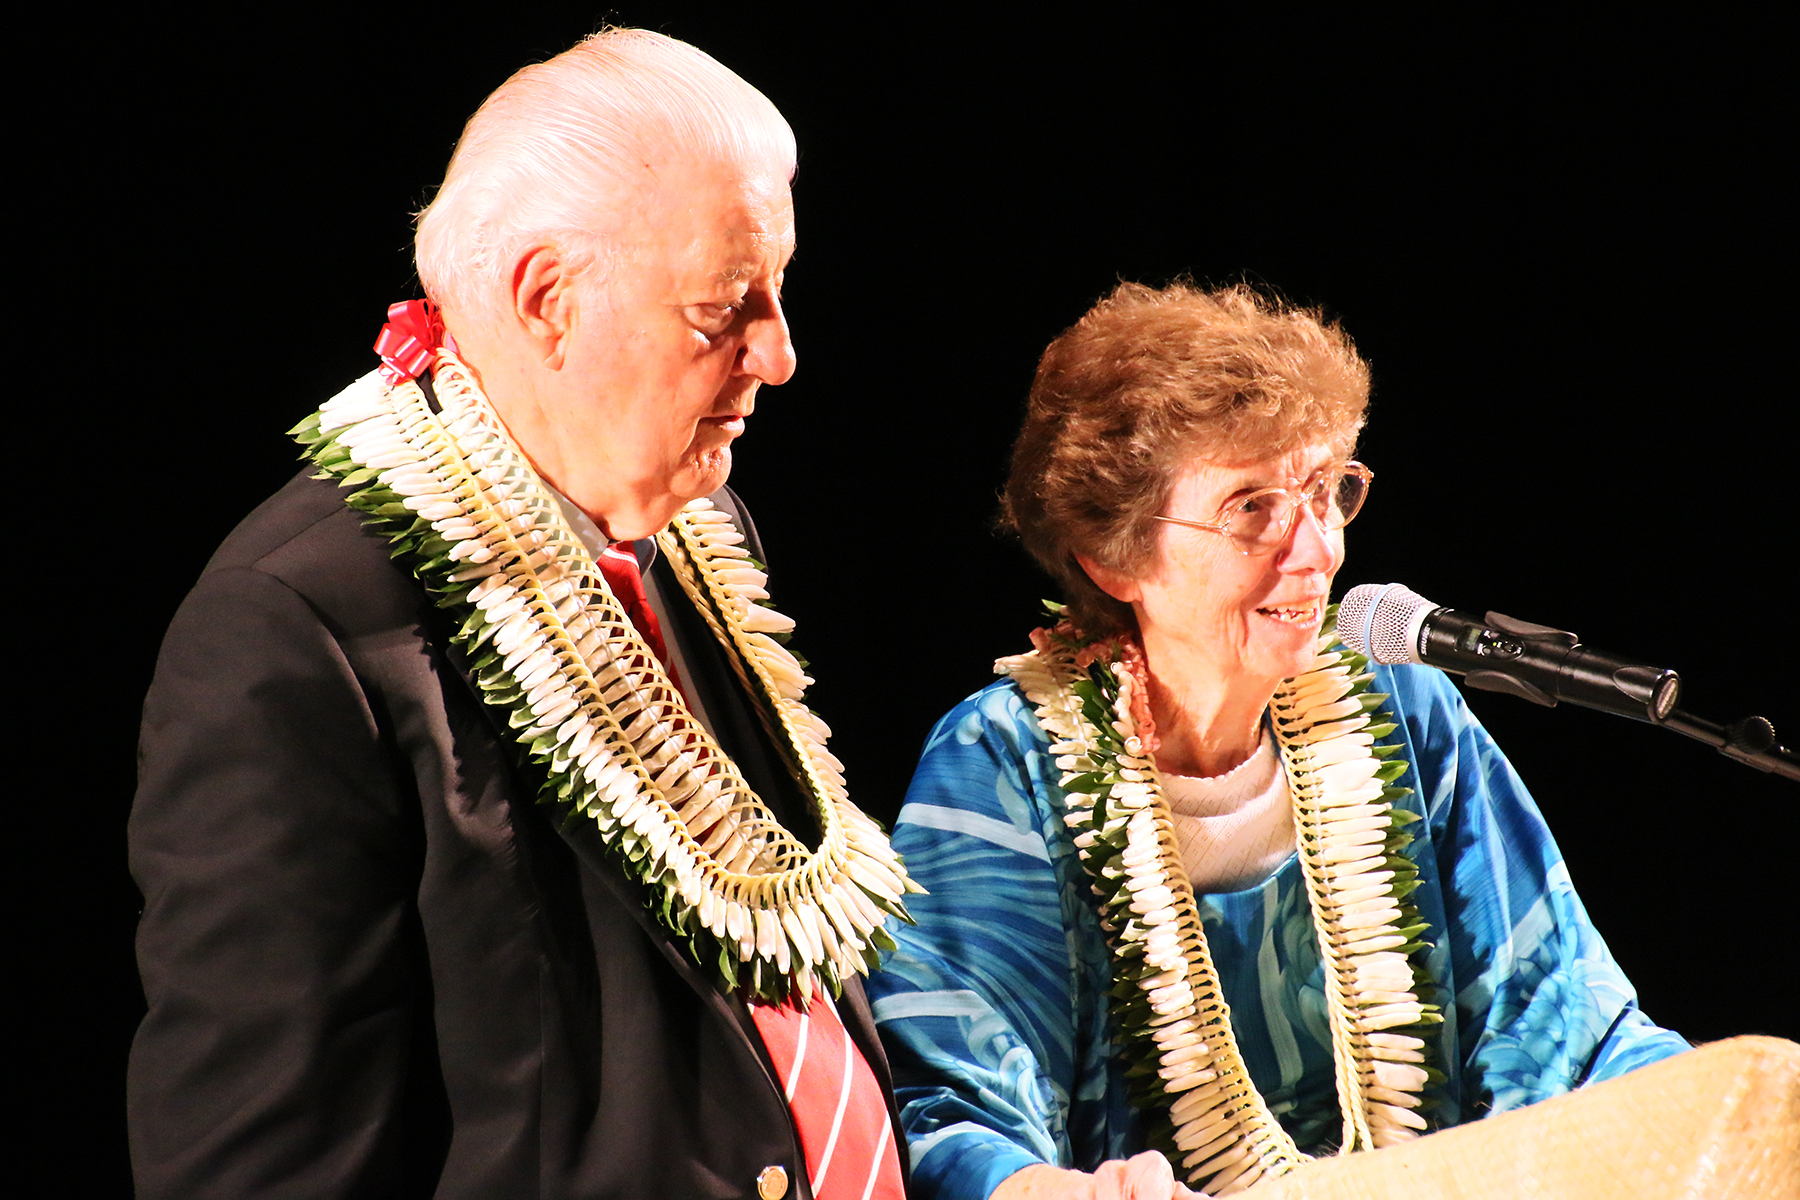 Emeritus General Authority Elder John H. Groberg and his wife, Sister Jean S. Groberg, answer questions following his keynote address during the opening session of the Mormon Pacific Historical Society's annual conference on Oct.21, 2016, in the Polynesian Cultural Center's Hawaiian Journey Theater.